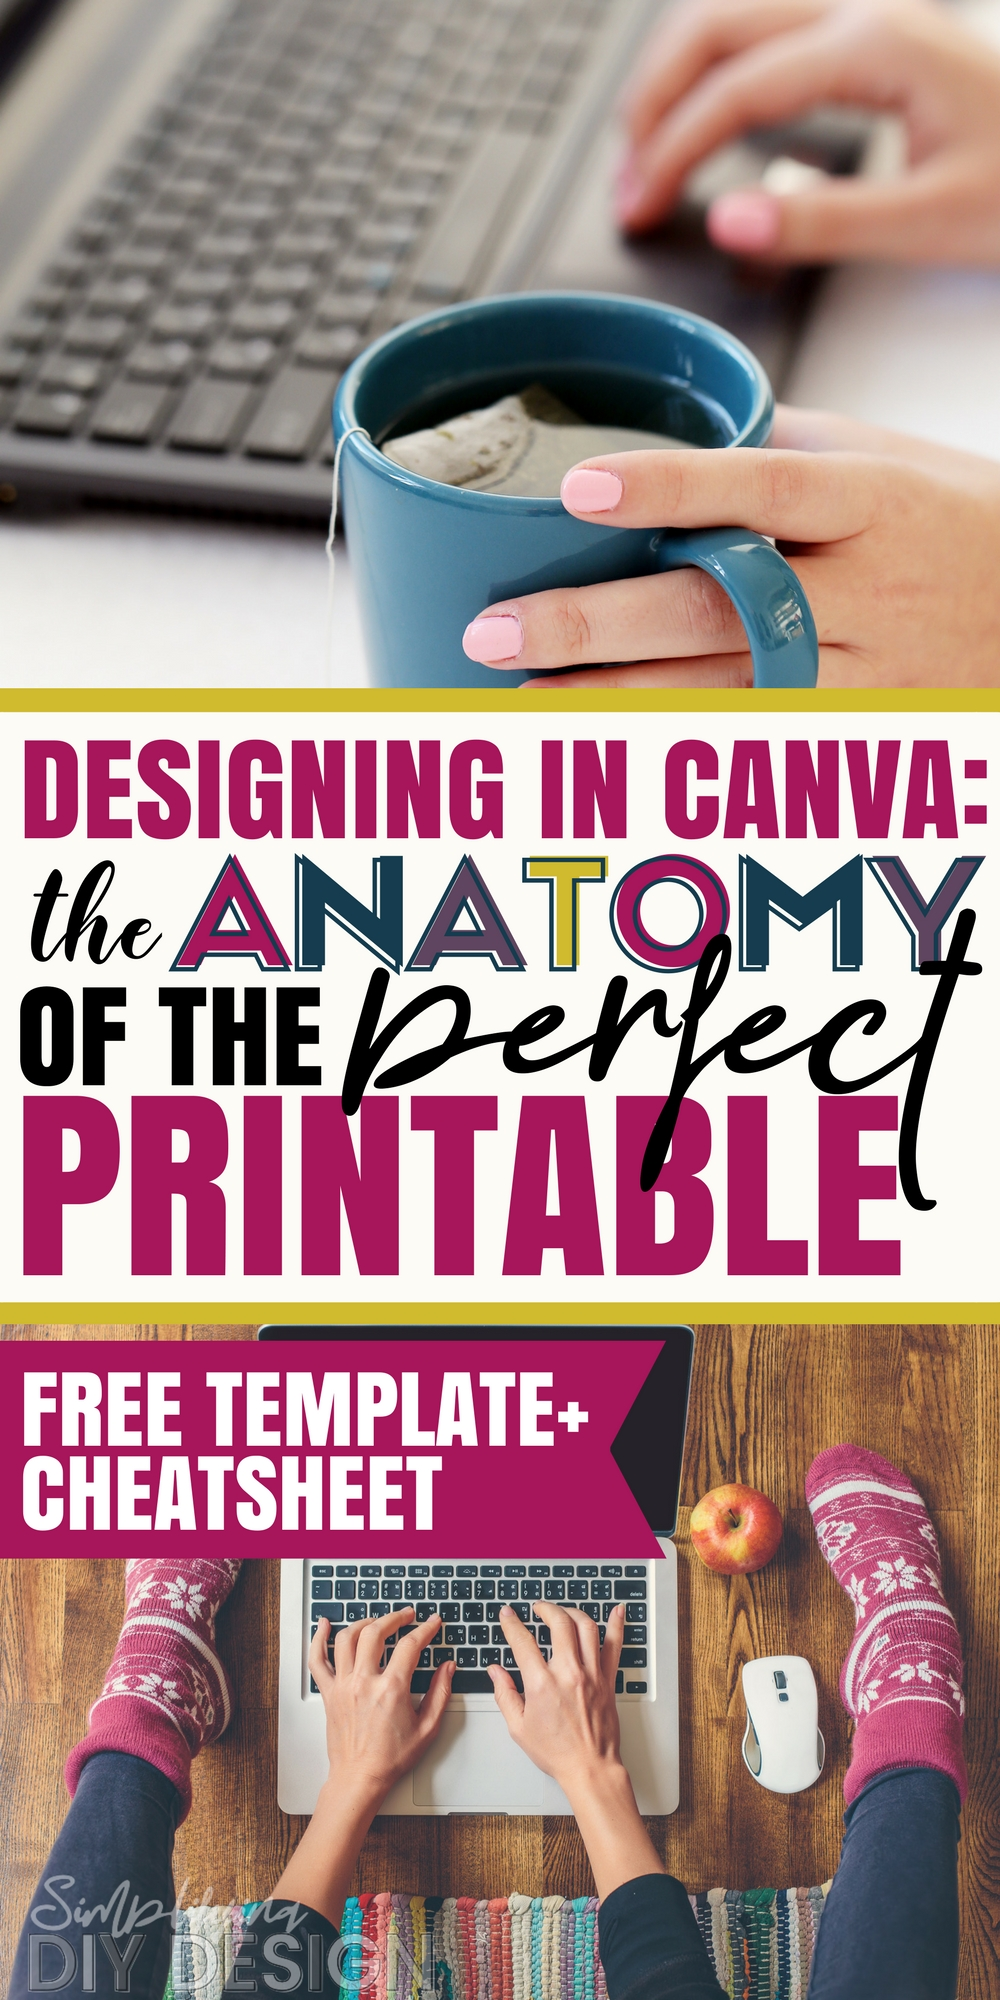 Taking the time to create a printable is SO important. If your printable doesn't stand out or if it's so unorganized and unprofessional looking then it will be hard to grow your blog. The perfectly designed printable has the power to grow your email list, help your readers take action, and help you generate income from blogging! Learn how to design a printable in canva!